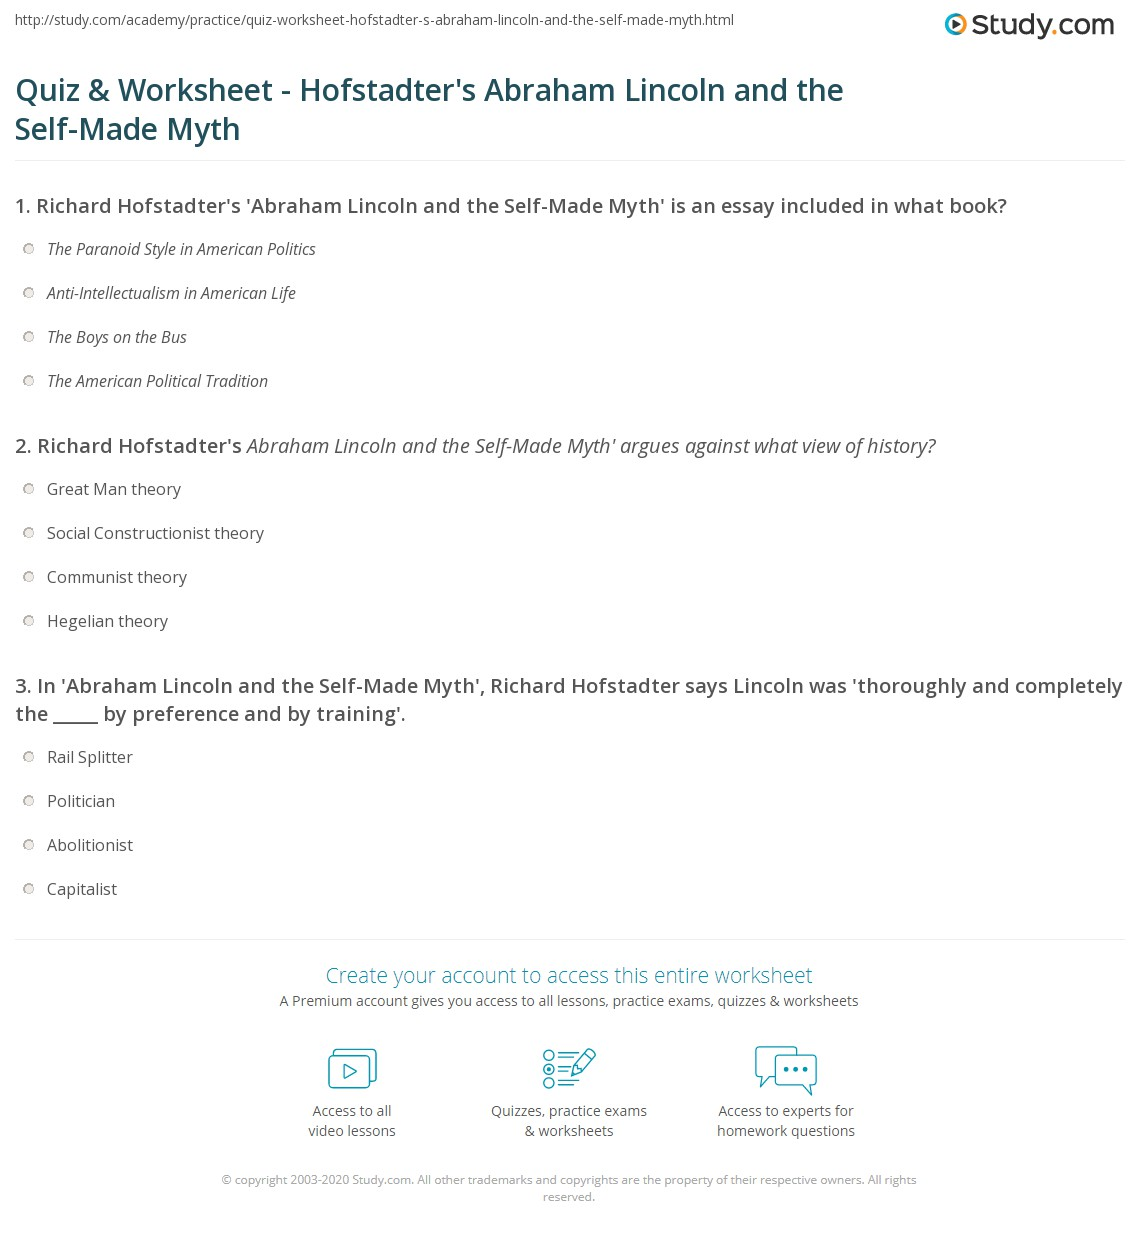 short essay on abraham lincoln short essay on importance of  quiz worksheet hofstadter s abraham lincoln and the self made print richard hofstadter s abraham lincoln